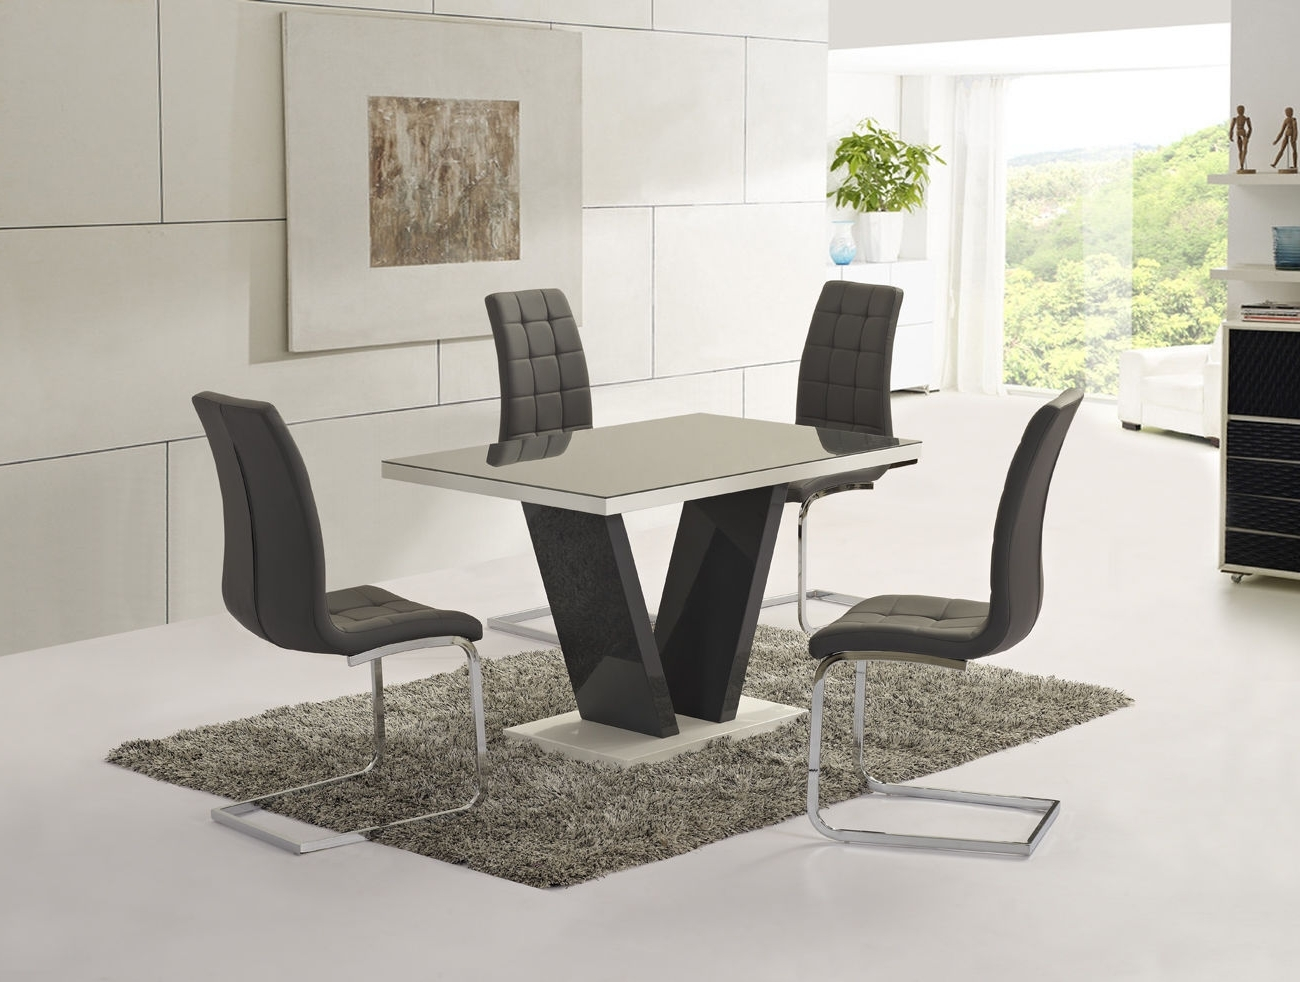 Ga Vico Gloss Grey Glass Top Designer 160Cm Dining Set – 4 6 Grey With Regard To Most Recently Released Black High Gloss Dining Tables And Chairs (Gallery 8 of 25)